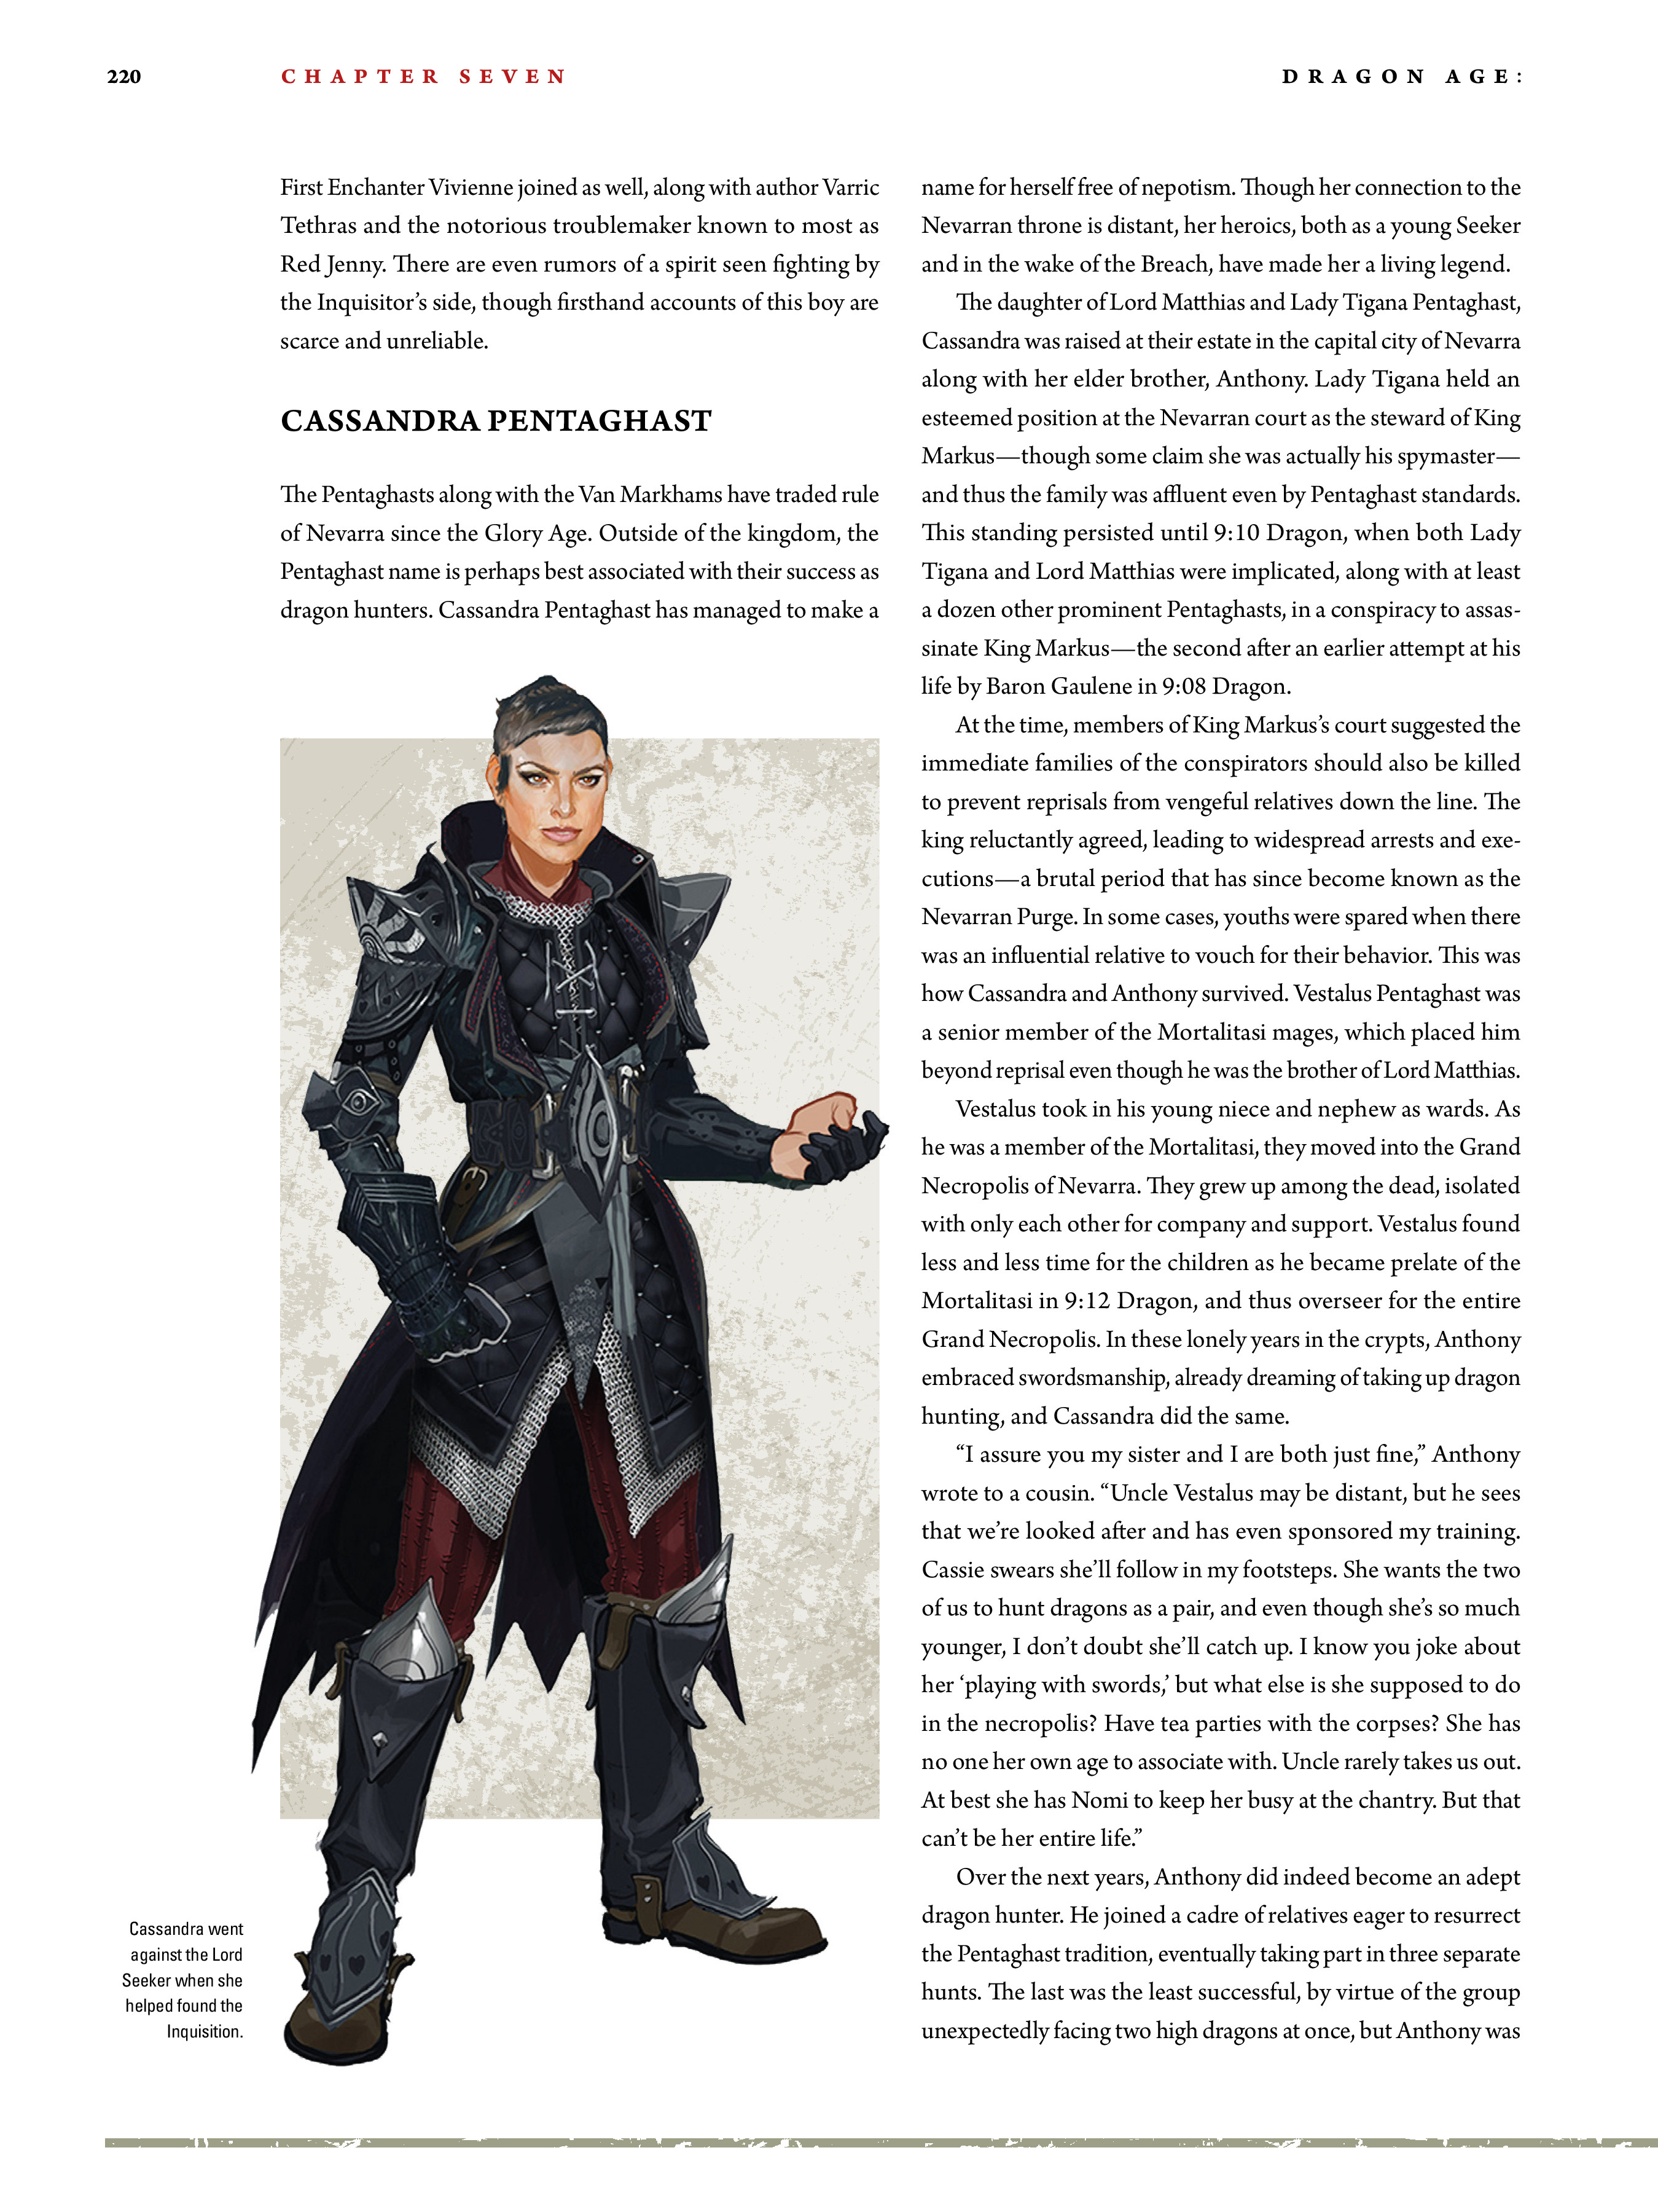 Read online Dragon Age: The World of Thedas comic -  Issue # TPB 2 - 215